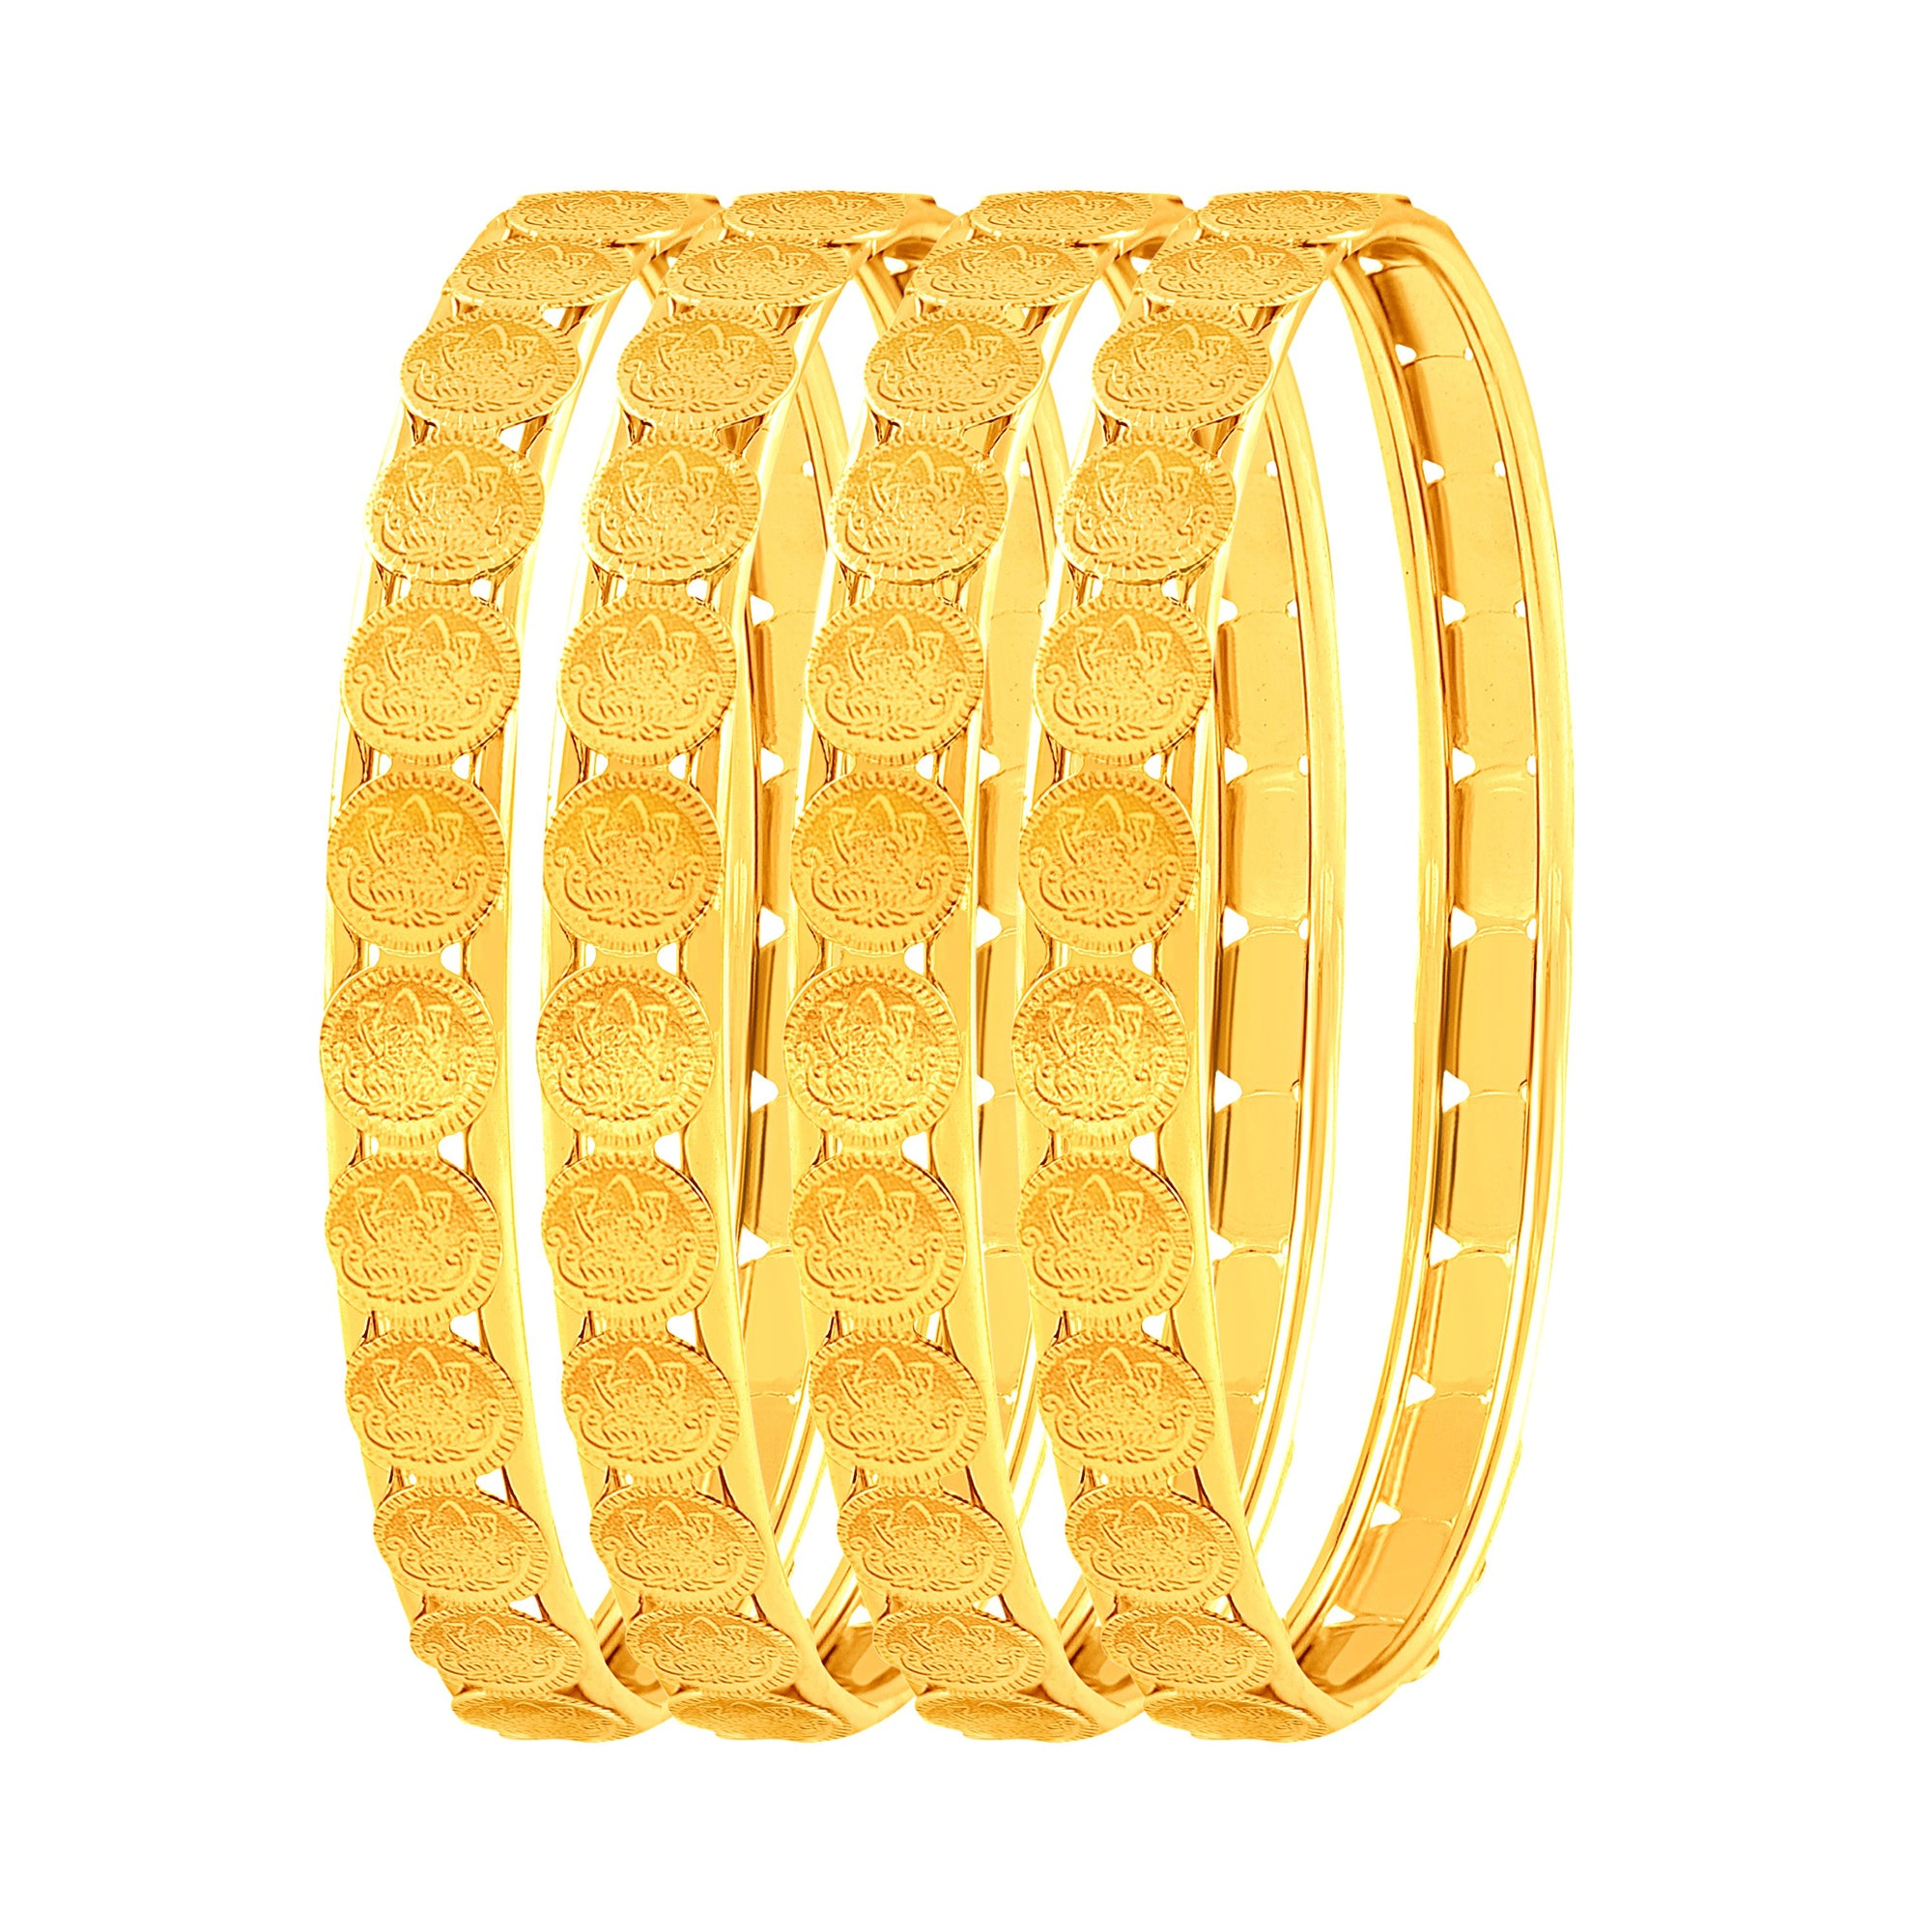 Asmitta Jewellery Laxmi Coin Gold Set Of 4 Bangles  -BG123